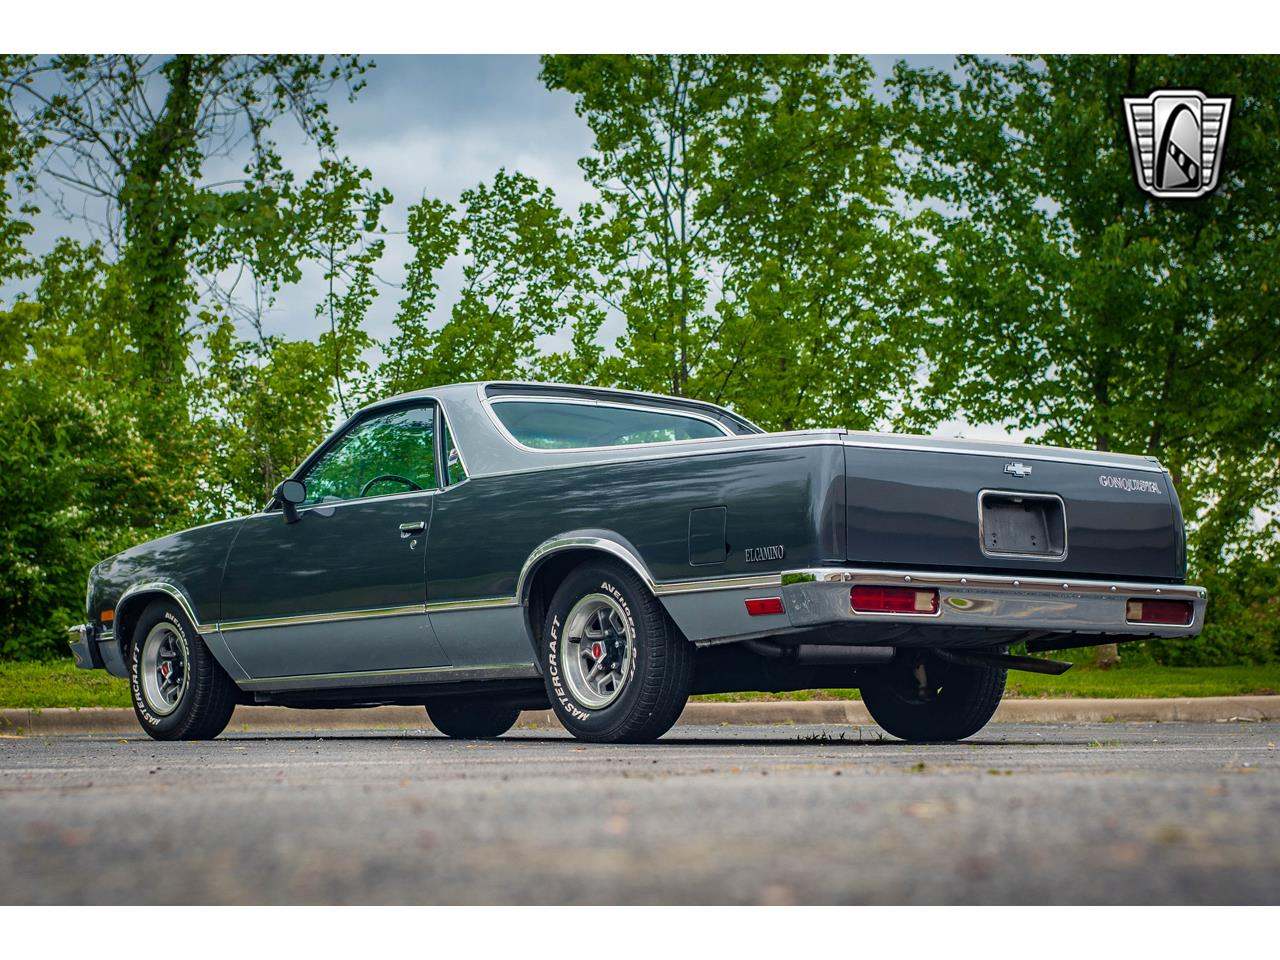 Large Picture of '82 El Camino located in O'Fallon Illinois Offered by Gateway Classic Cars - St. Louis - QB9A